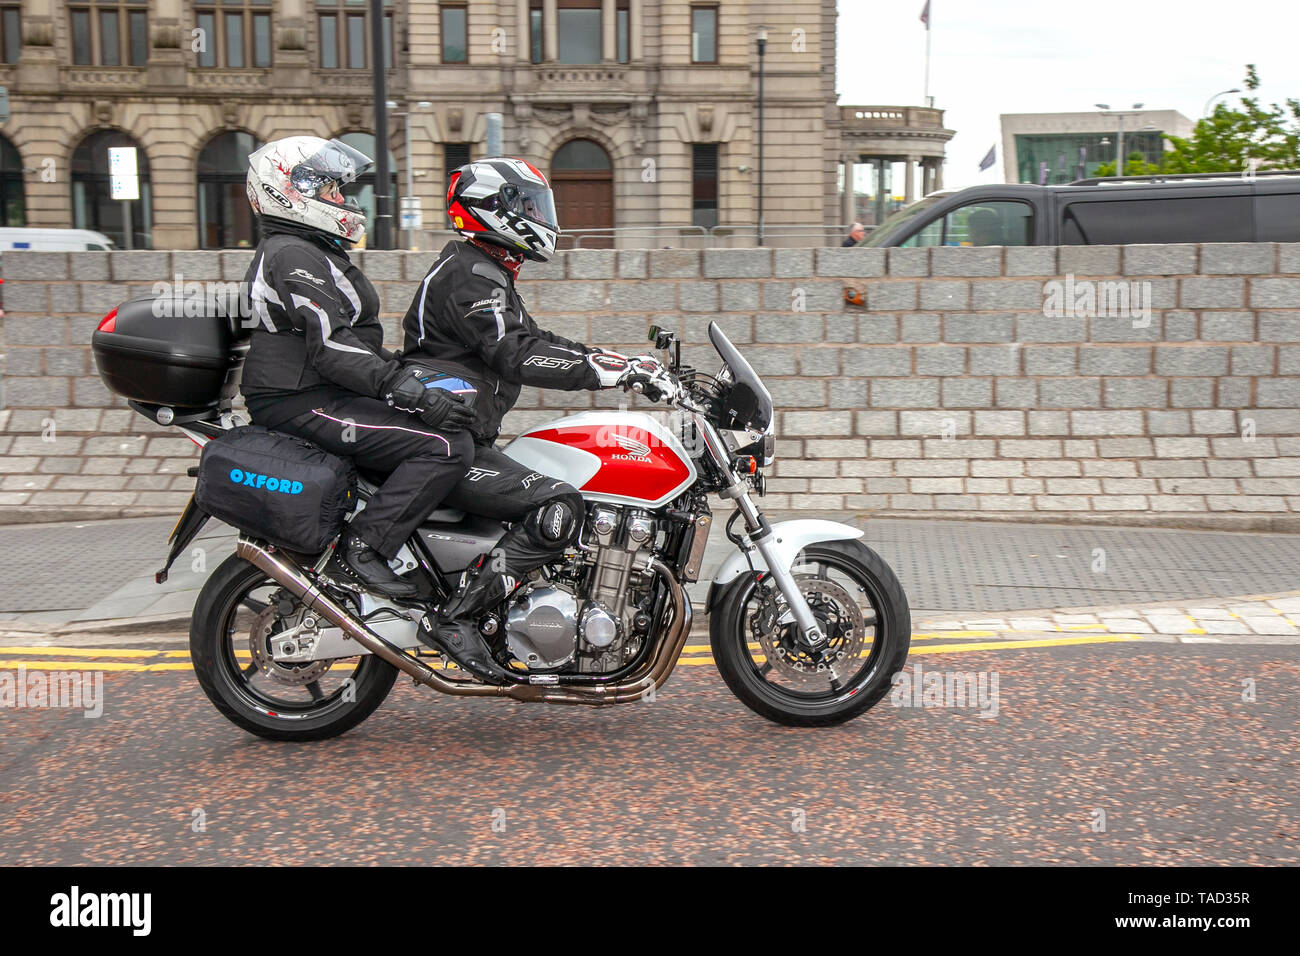 Honda Cb High Resolution Stock Photography And Images Alamy